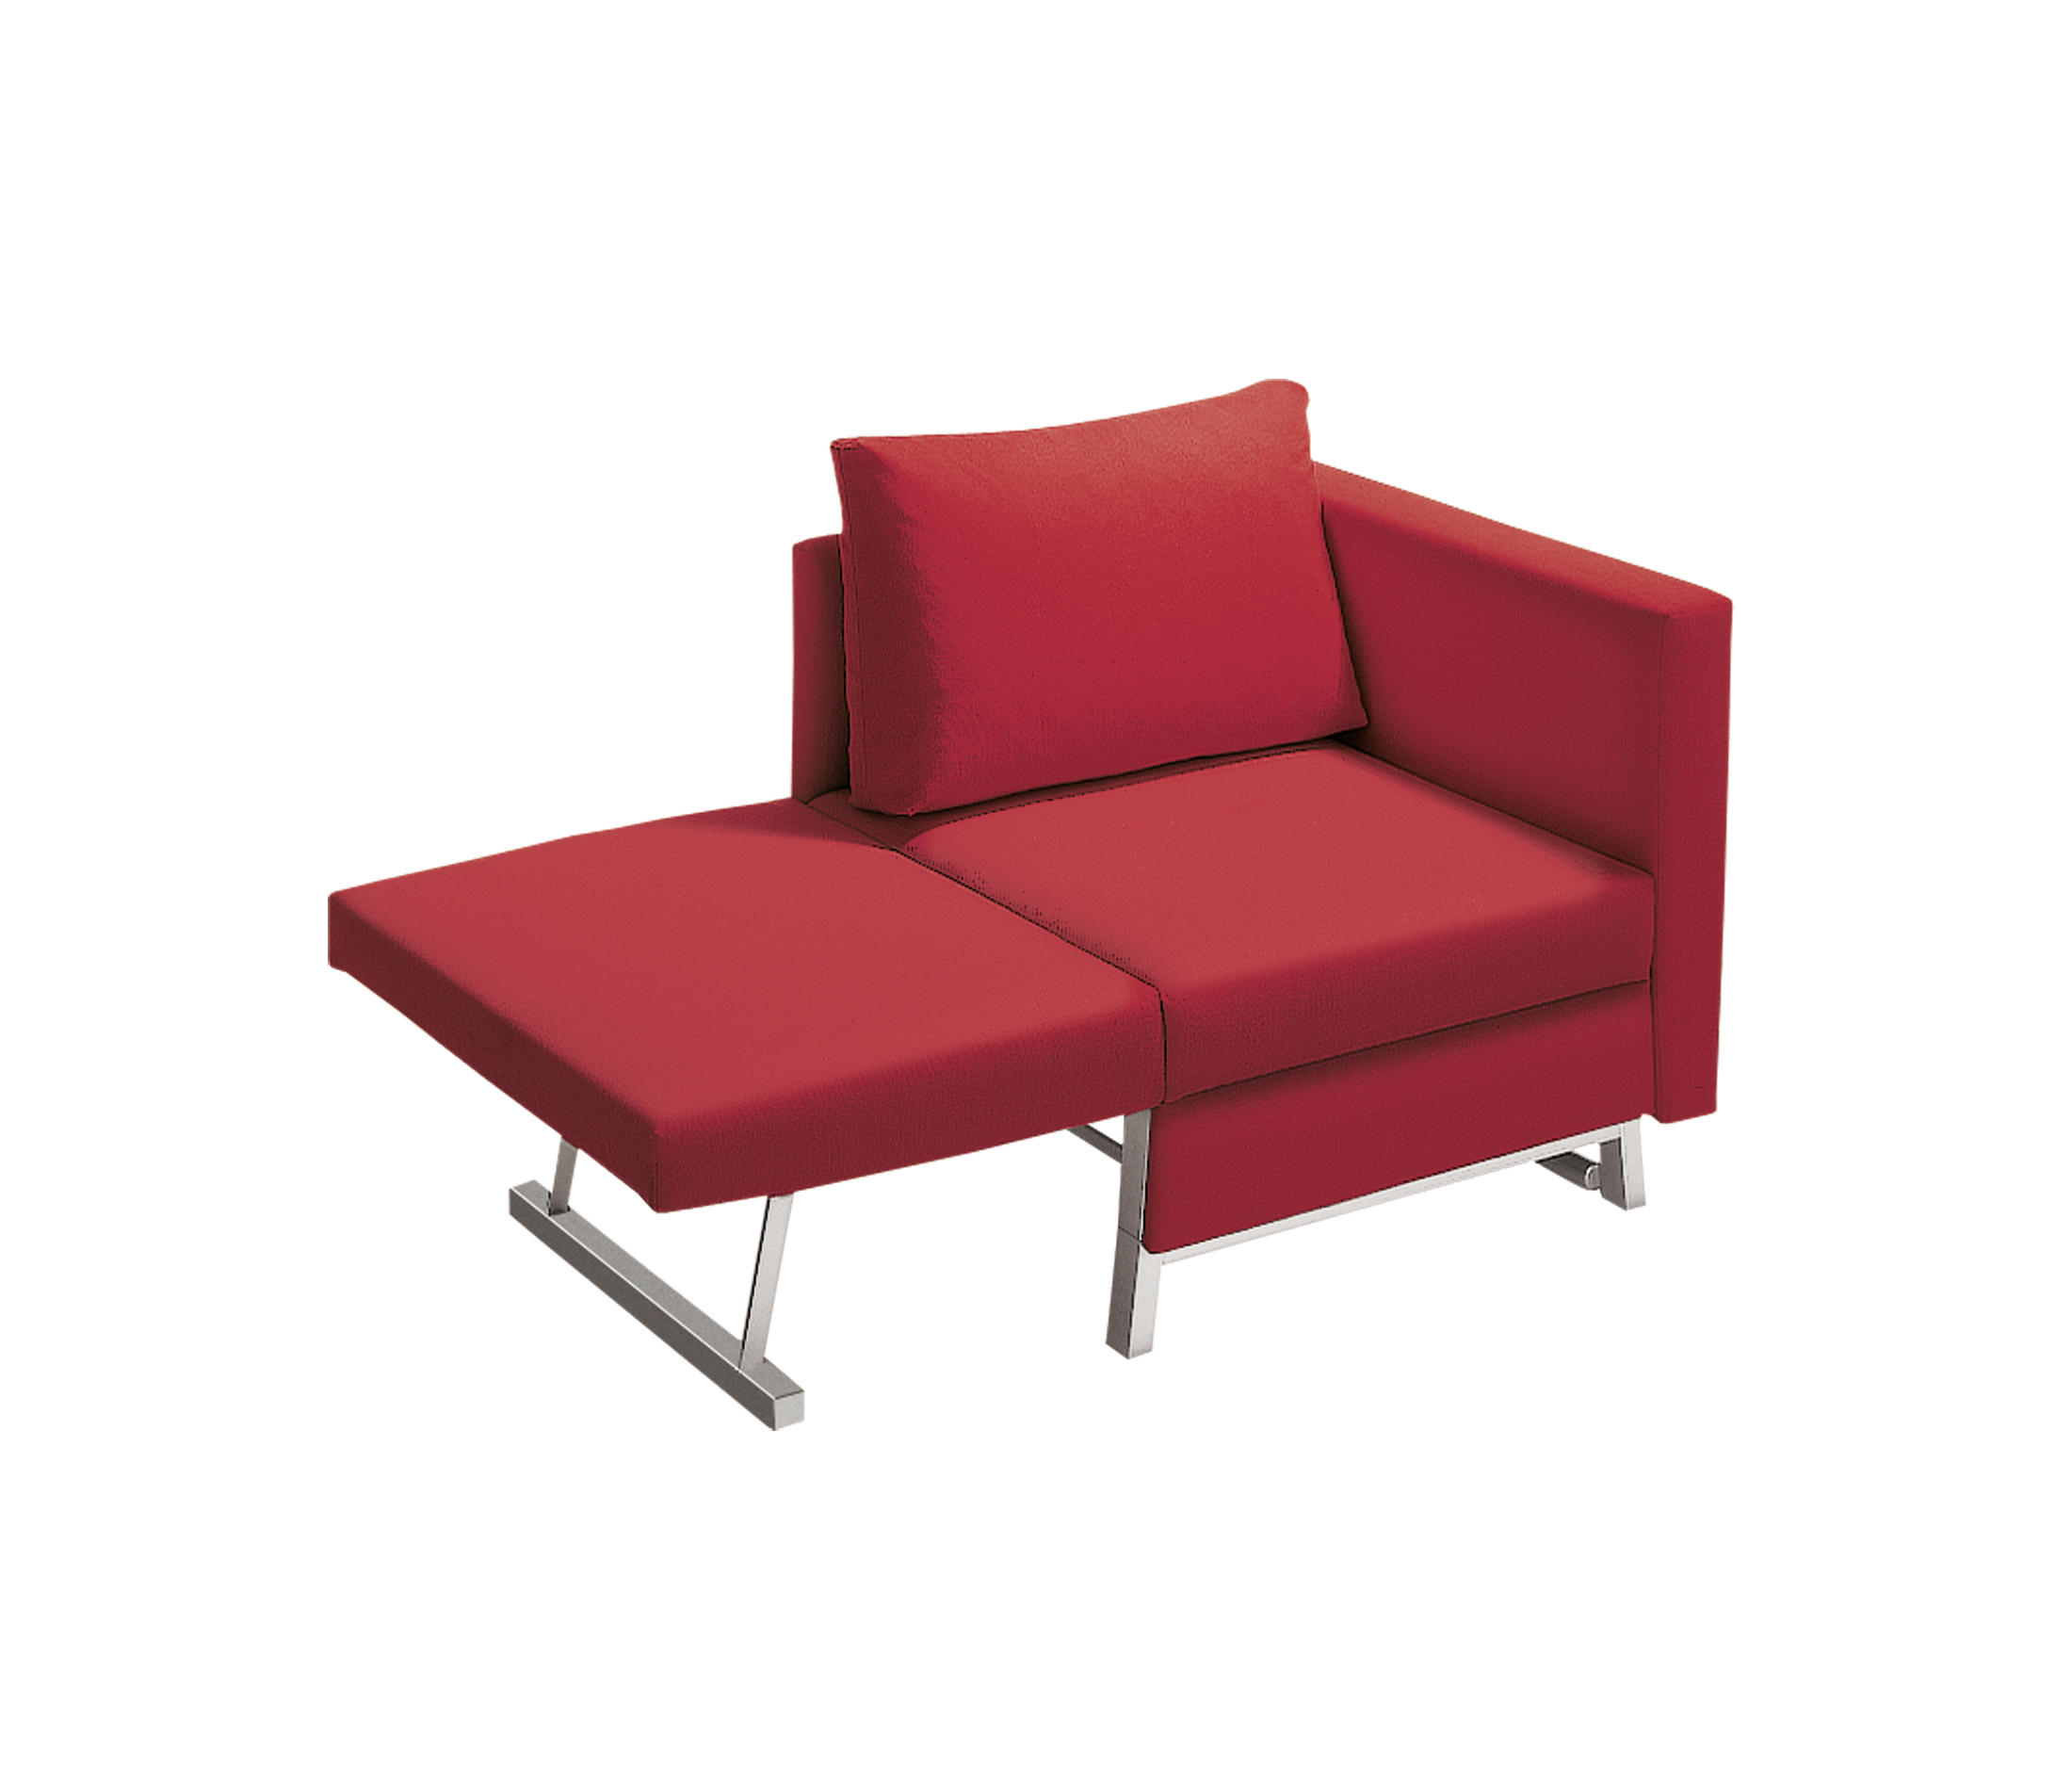 Sessel Die Collection Fox Sessel - Chaise Longues Von Die Collection | Architonic